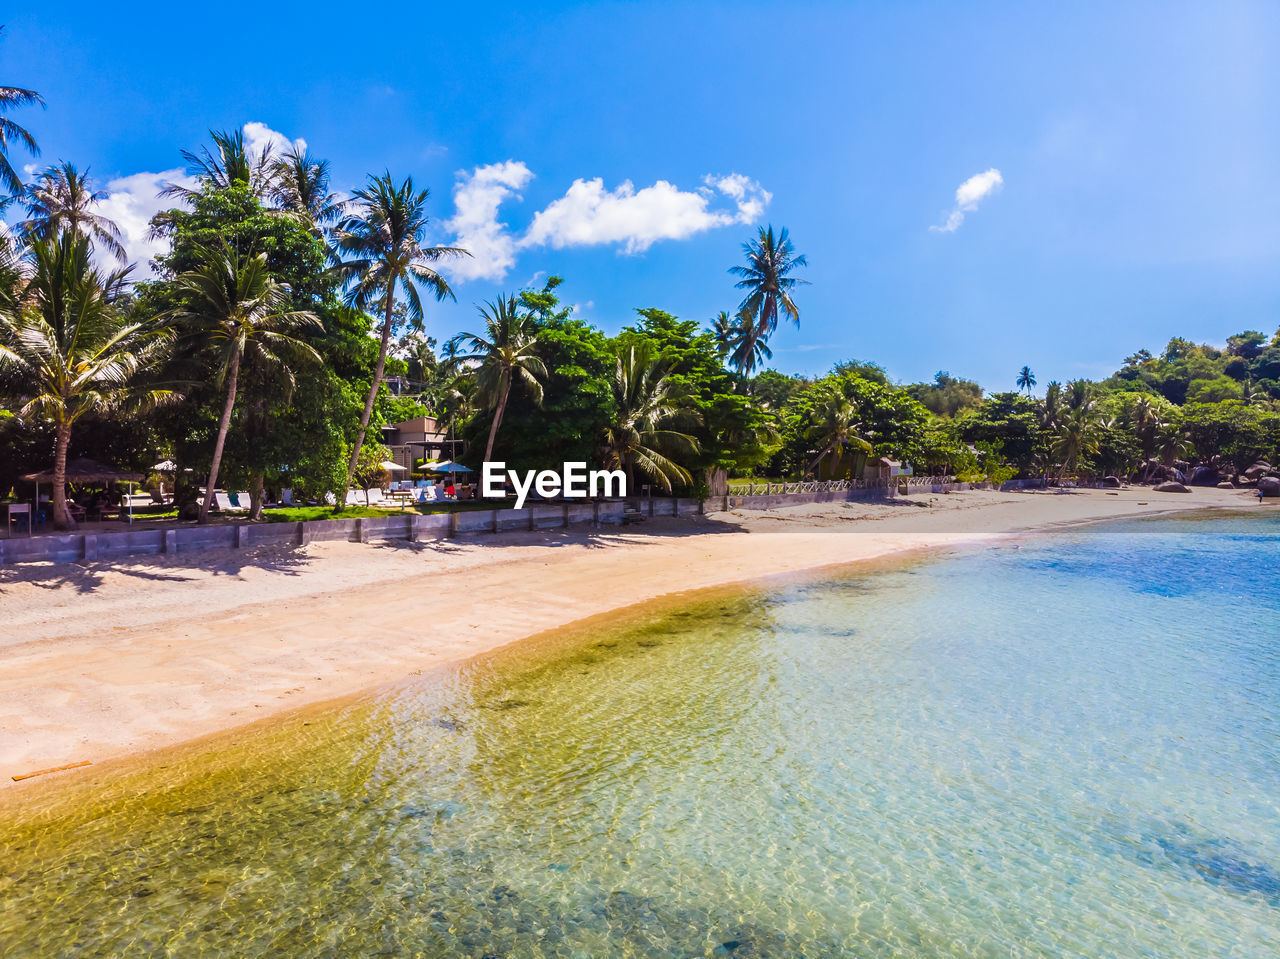 tropical climate, palm tree, tree, water, sky, plant, beach, land, sea, beauty in nature, nature, tranquil scene, sand, scenics - nature, blue, tranquility, coconut palm tree, cloud - sky, sunlight, no people, outdoors, tropical tree